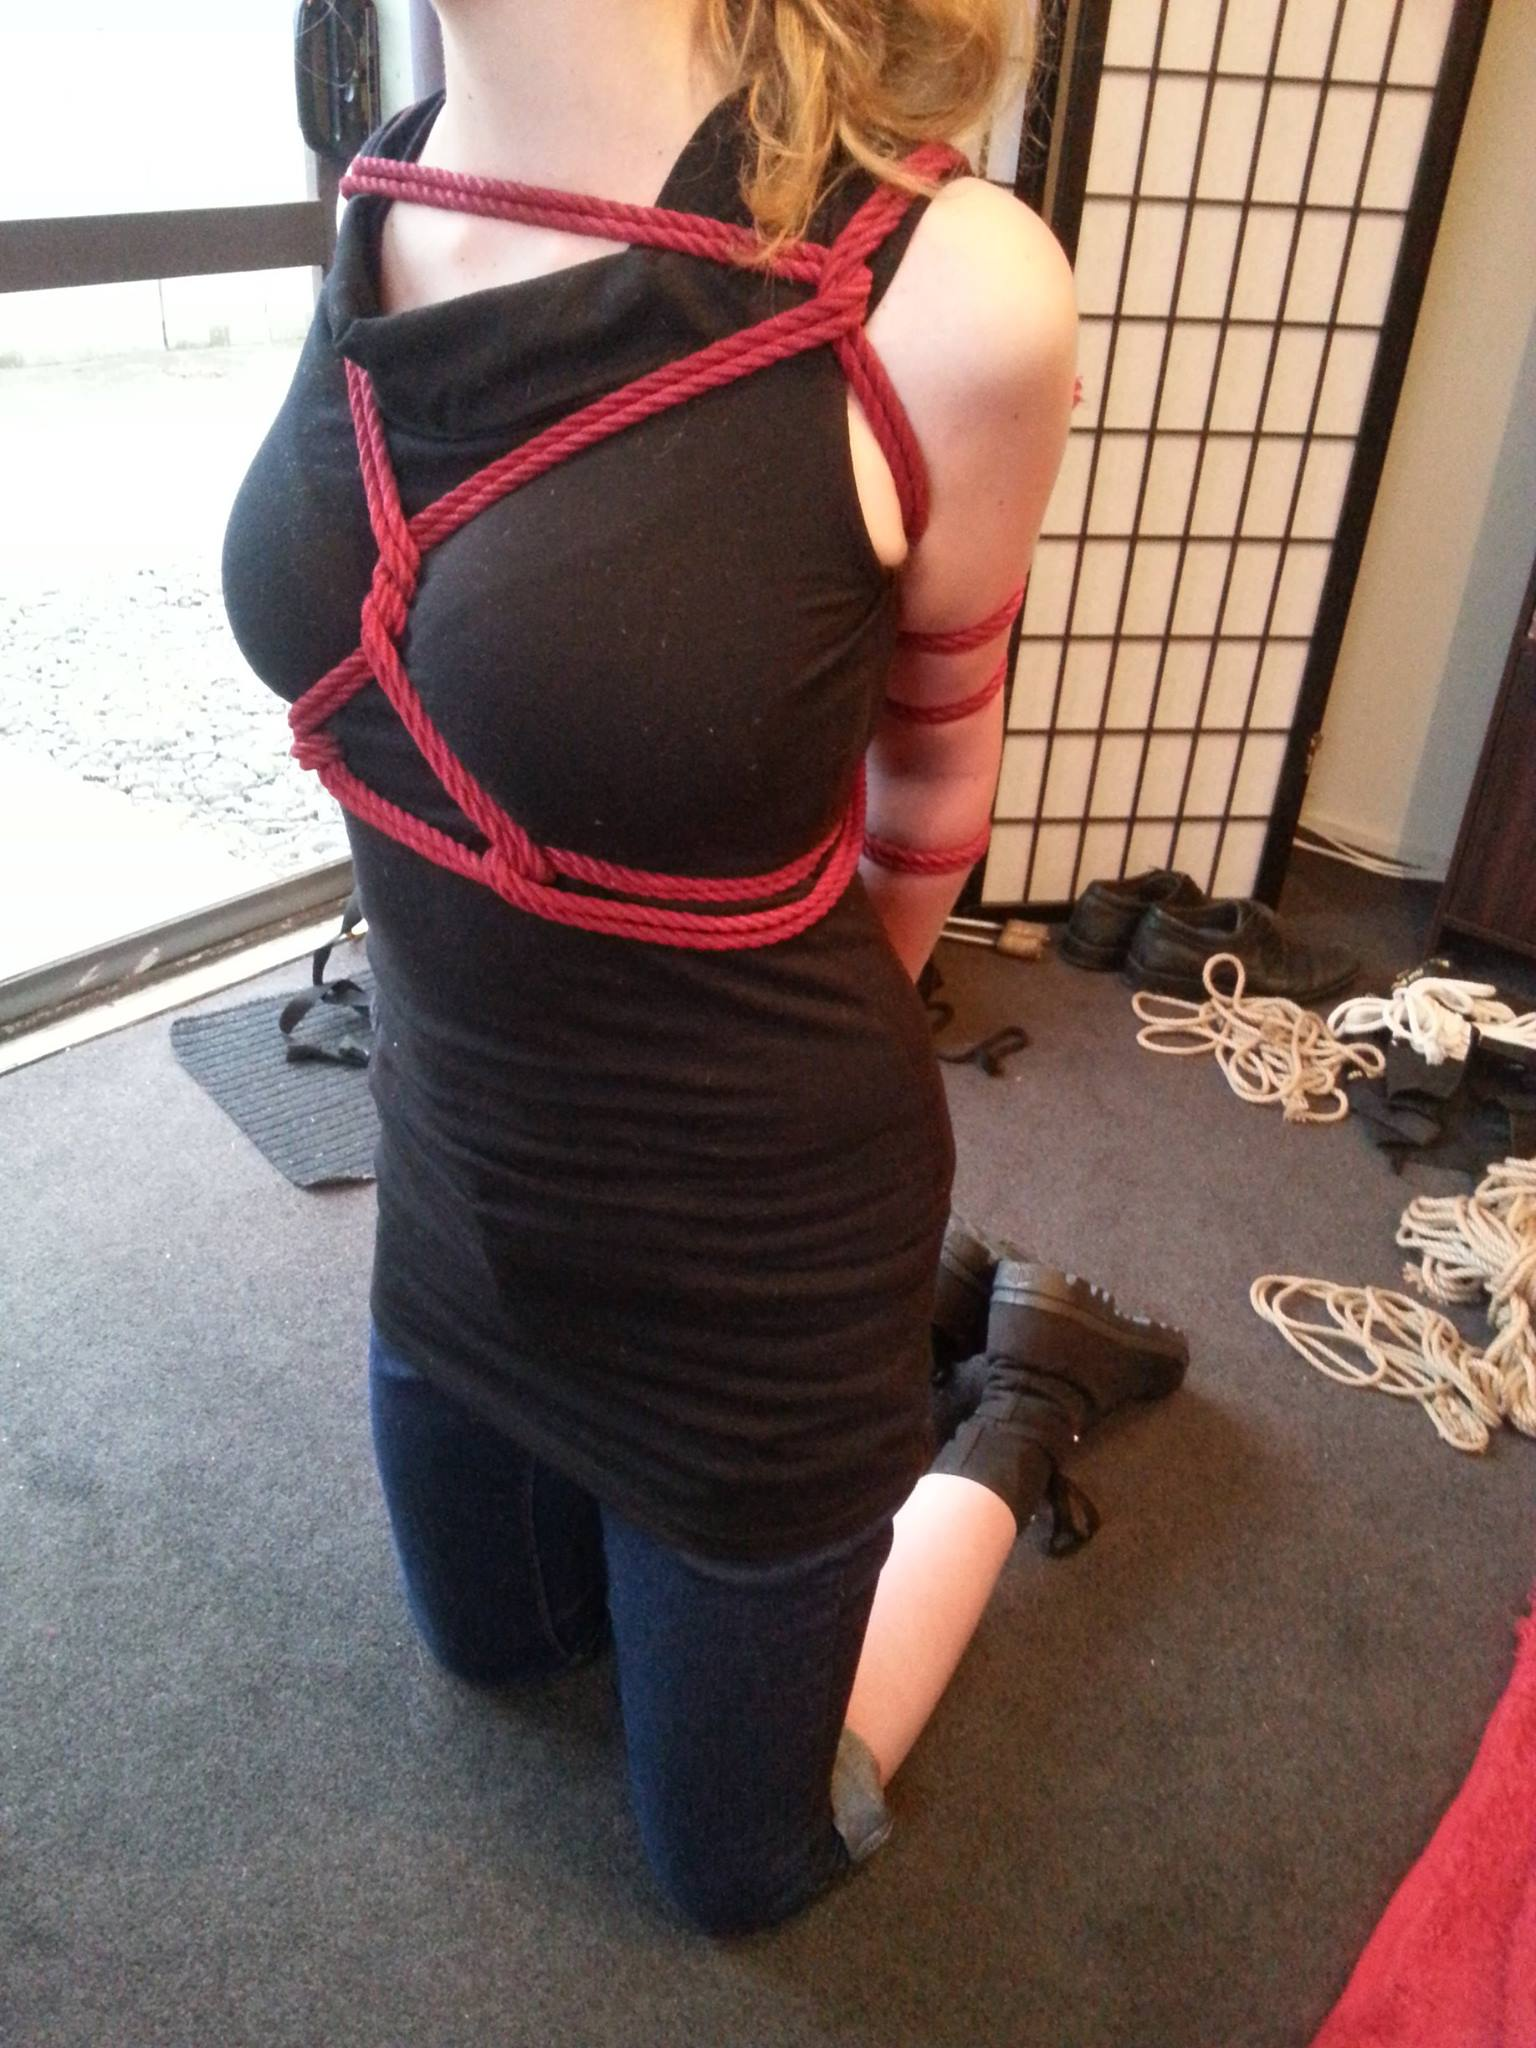 How To Tie A Rope Armbinder - Rope Connections